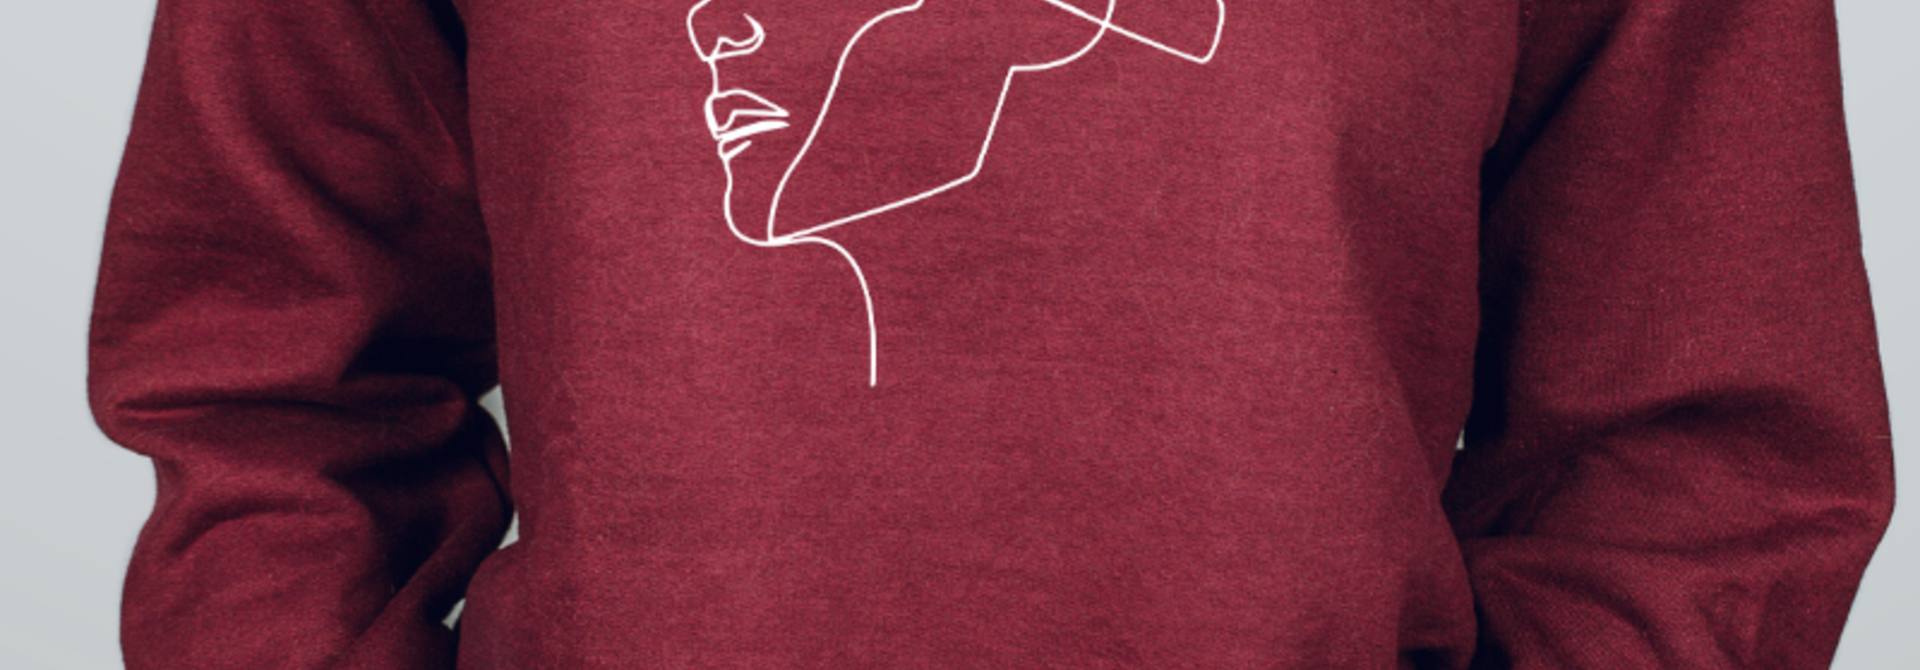 Sweater 'Faces' - burgundy & gold | Art Collection